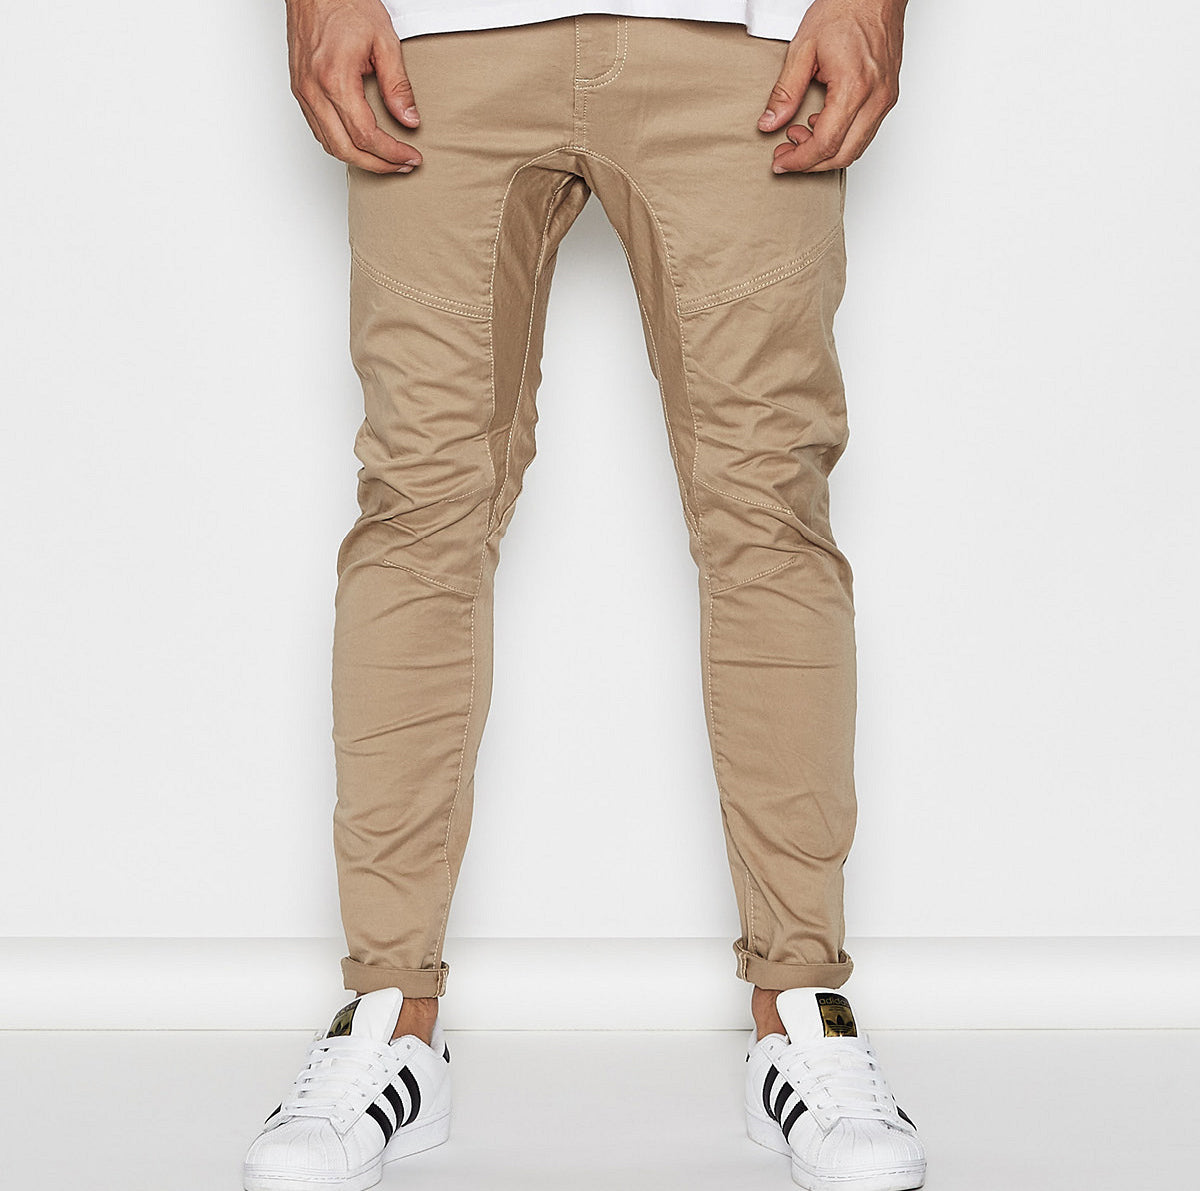 NxP Avalanche Pants - Combat Straw - Forestwood Co